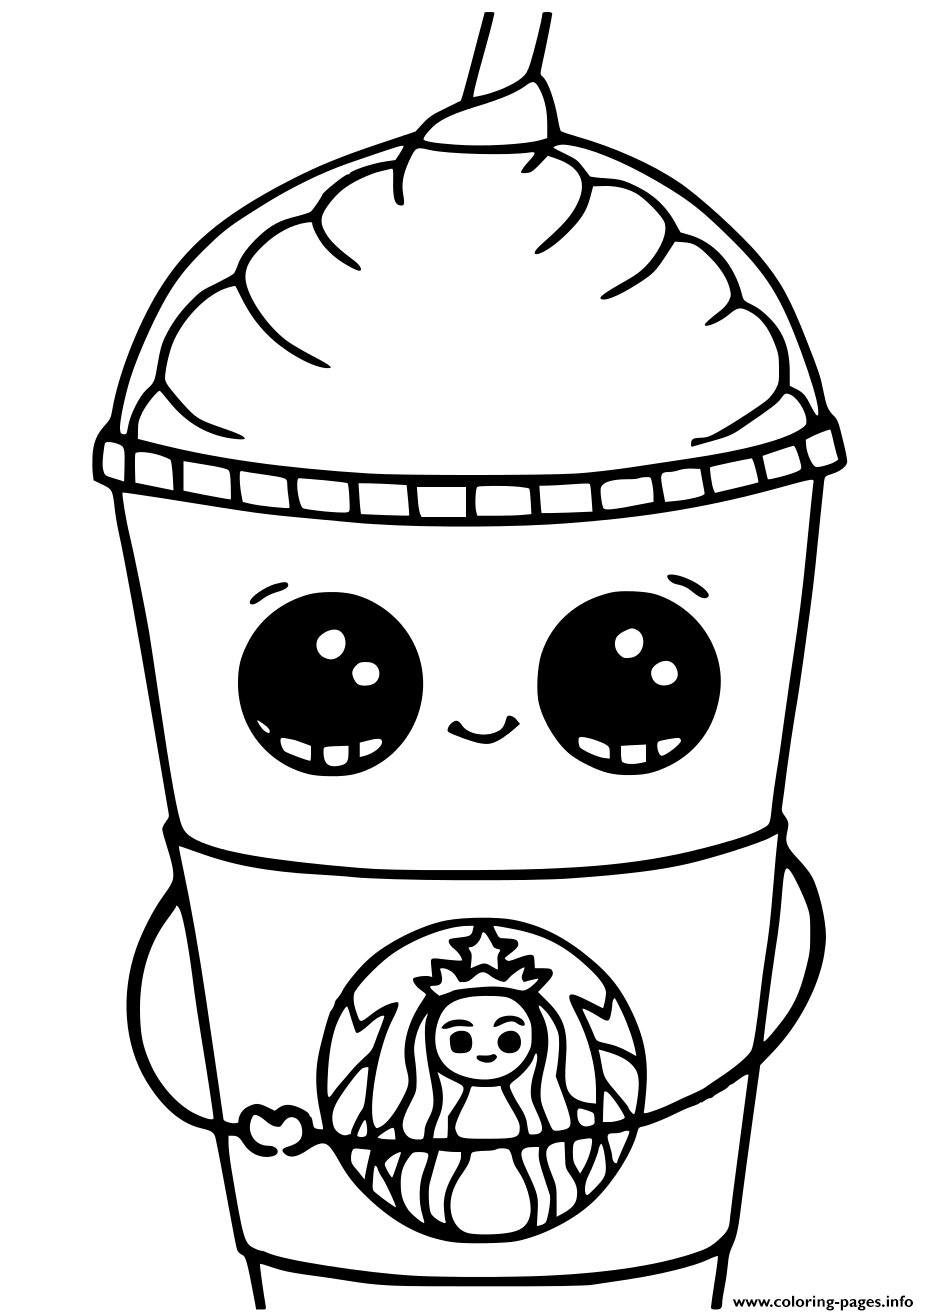 Print Starbucks Cups Kawaii Coloring Pages Creation Coloring Pages Food Coloring Pages Pusheen Coloring Pages